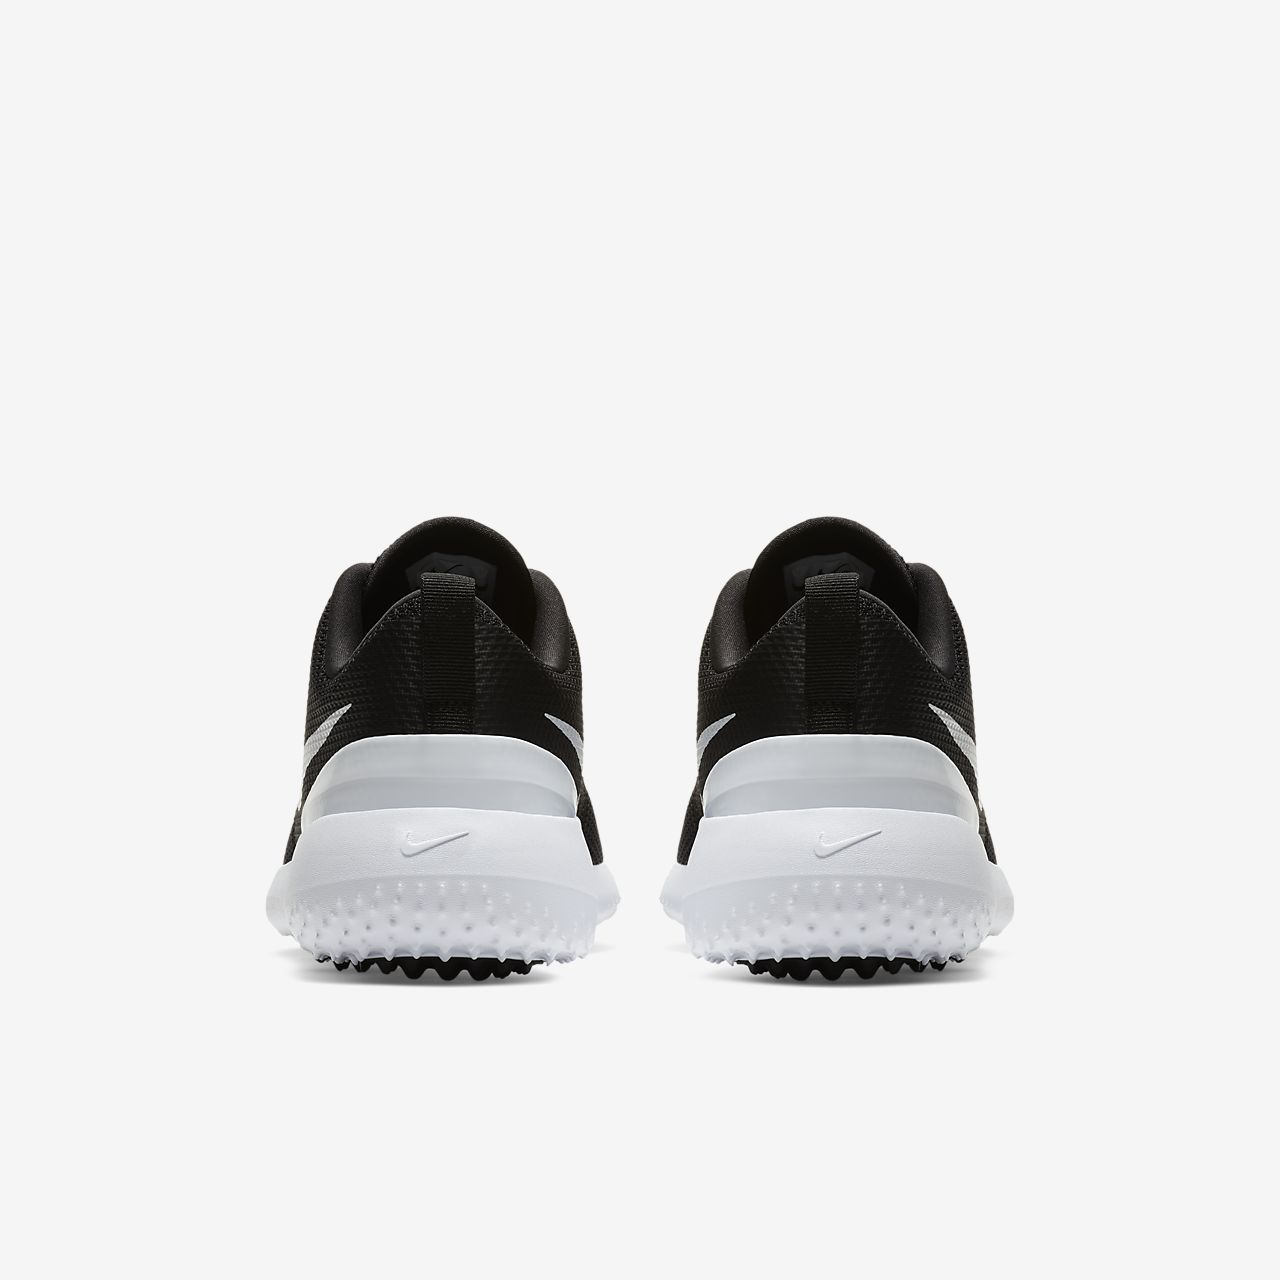 d7d37057f08 Nike Roshe G Men s Golf Shoe. Nike.com